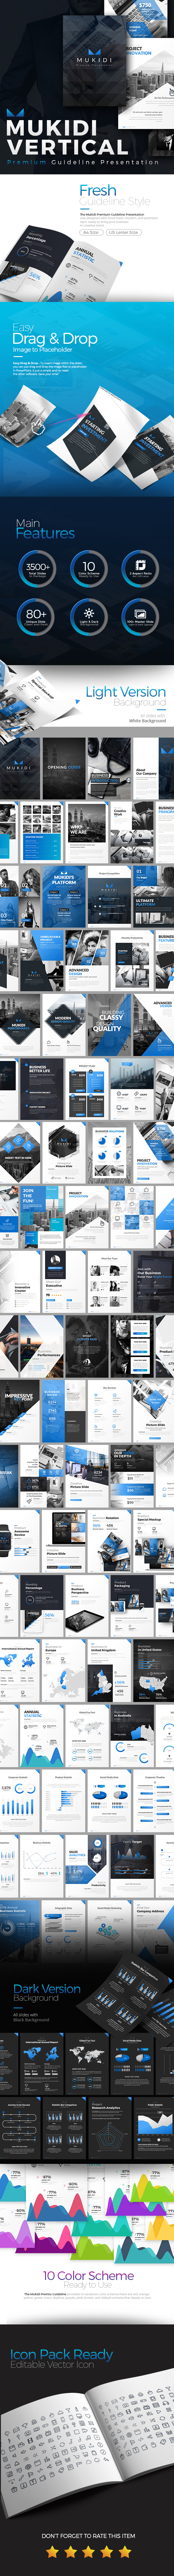 Mukidi Vertical Premium Presentation - Business PowerPoint Templates